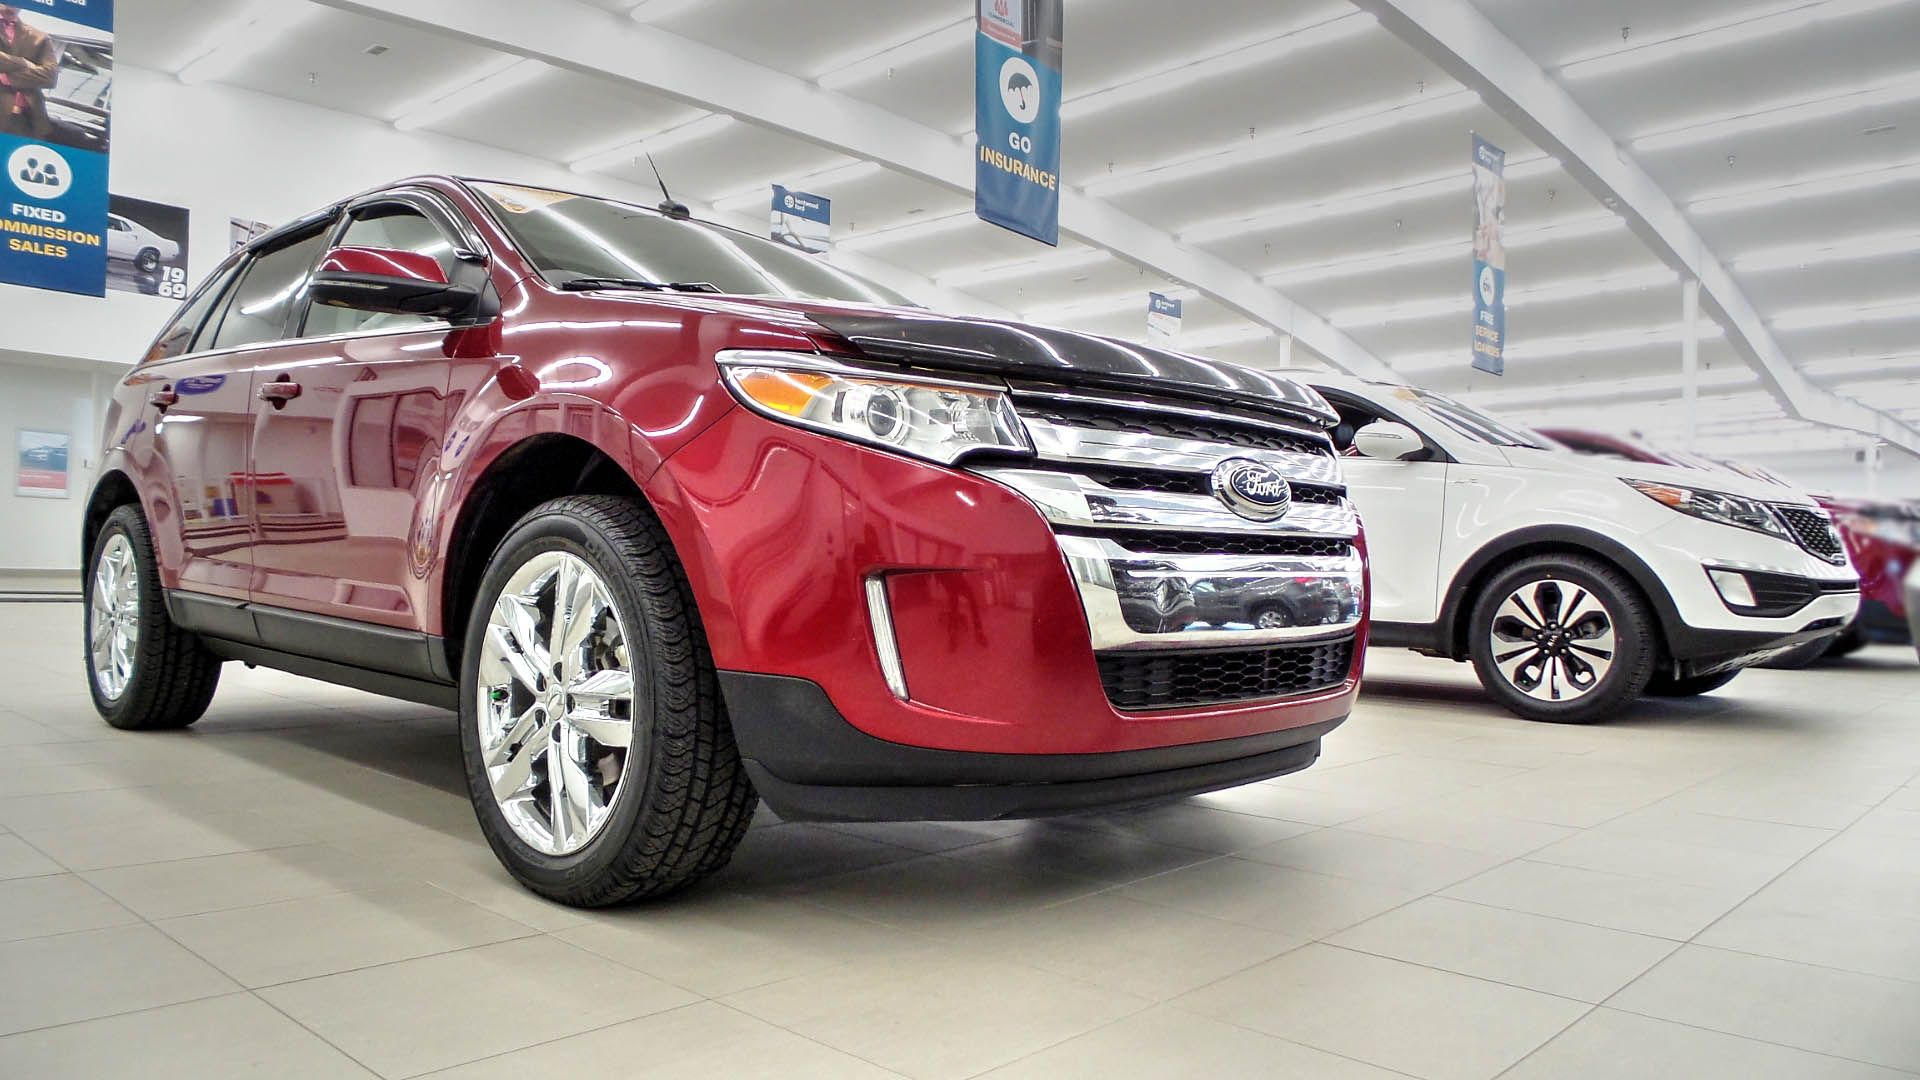 View Our Current Used Vehicle Selection At Our Newly Opened Pre Owned Vehicle Super Centre Location 10105 137 Avenue In Yeg Ford Kentwood Driving Test